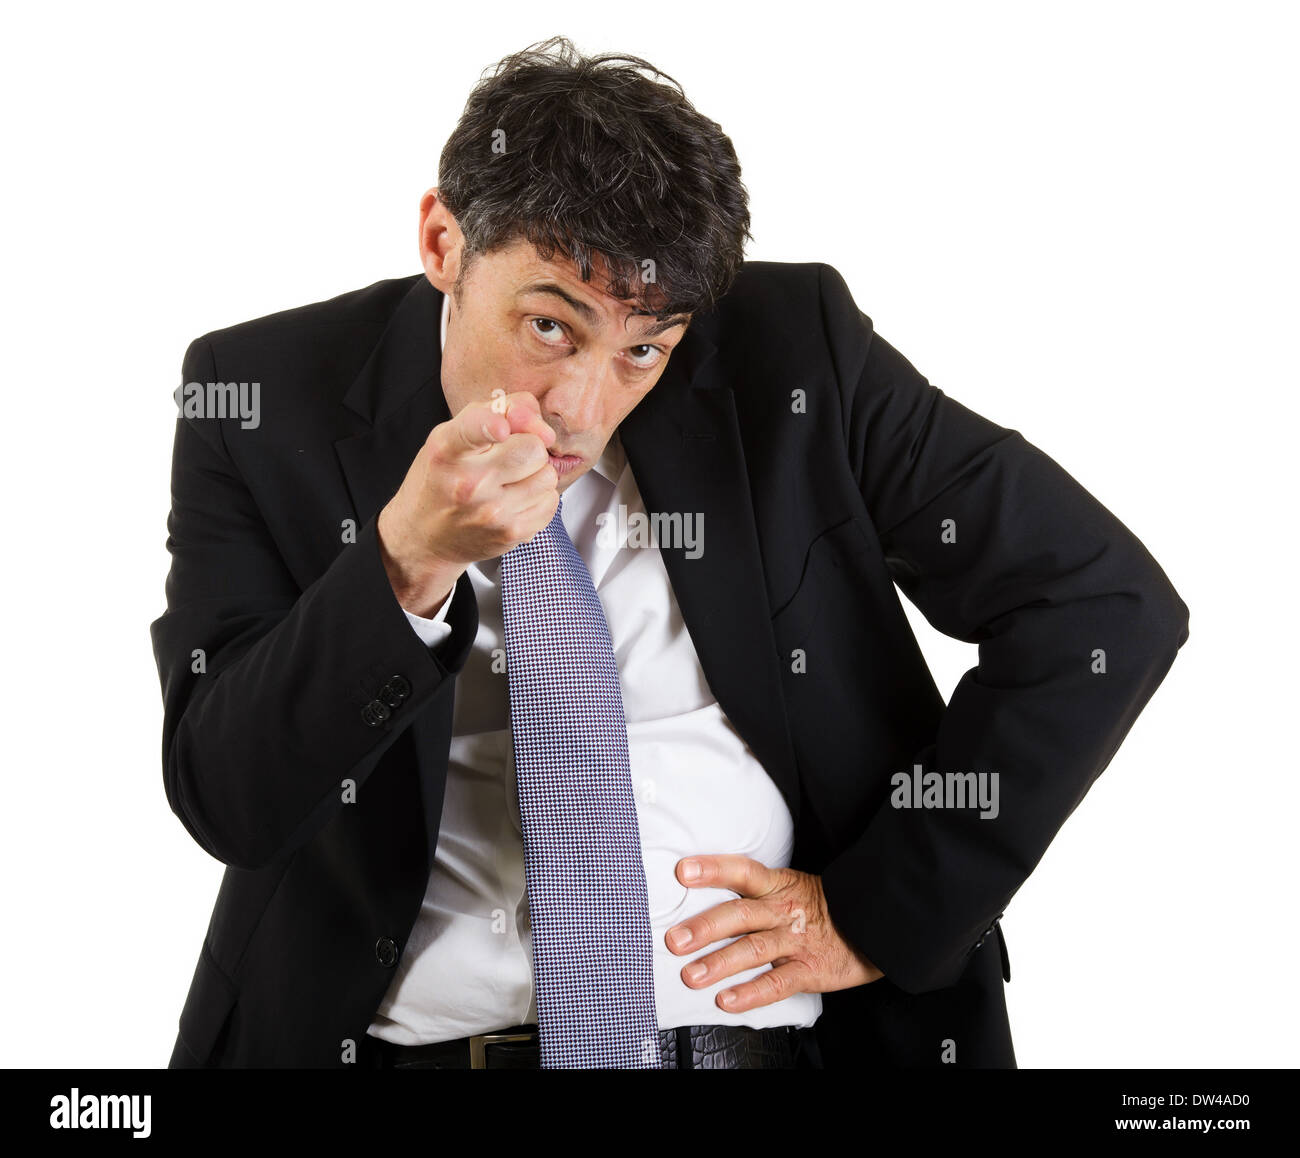 businessman pointing an accusatory finger at the camera identifying and blaming the viewer, upper body portrait isolated - Stock Image